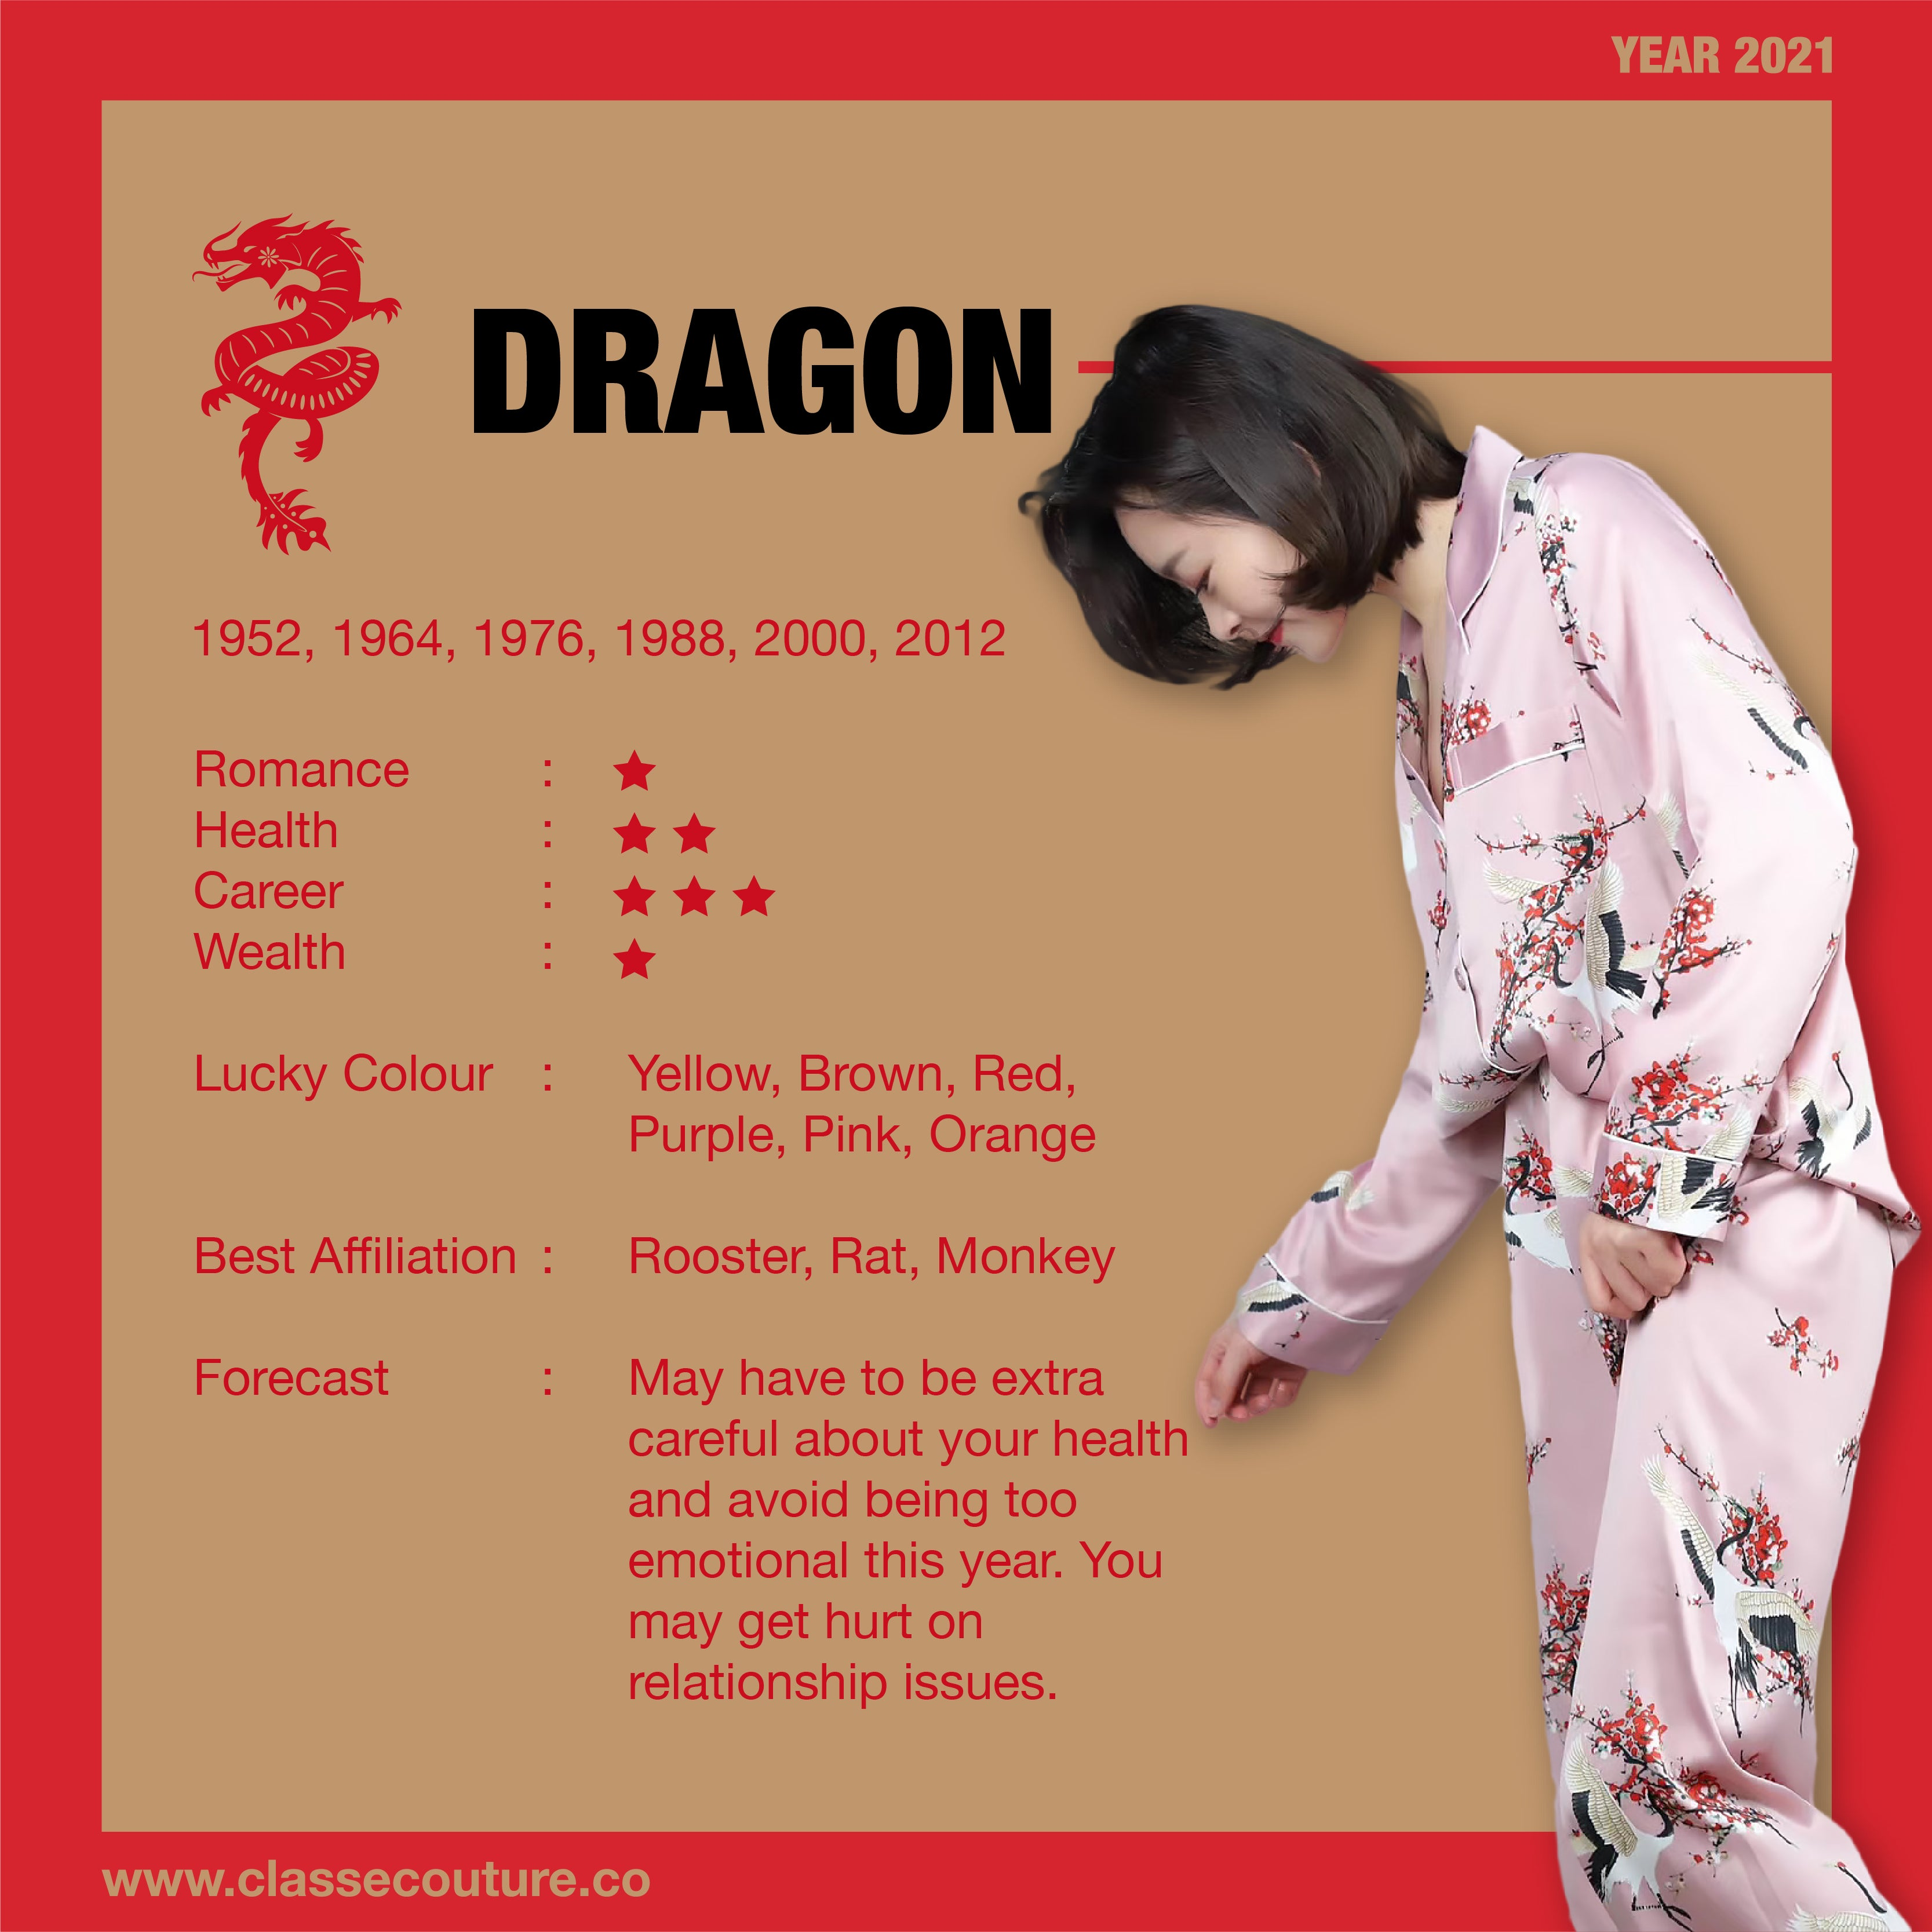 Chinese Horoscope year 2021 - year of the Ox. Yearly Feng Shui forecast and summarises about Dragon Horoscope in year 2021!